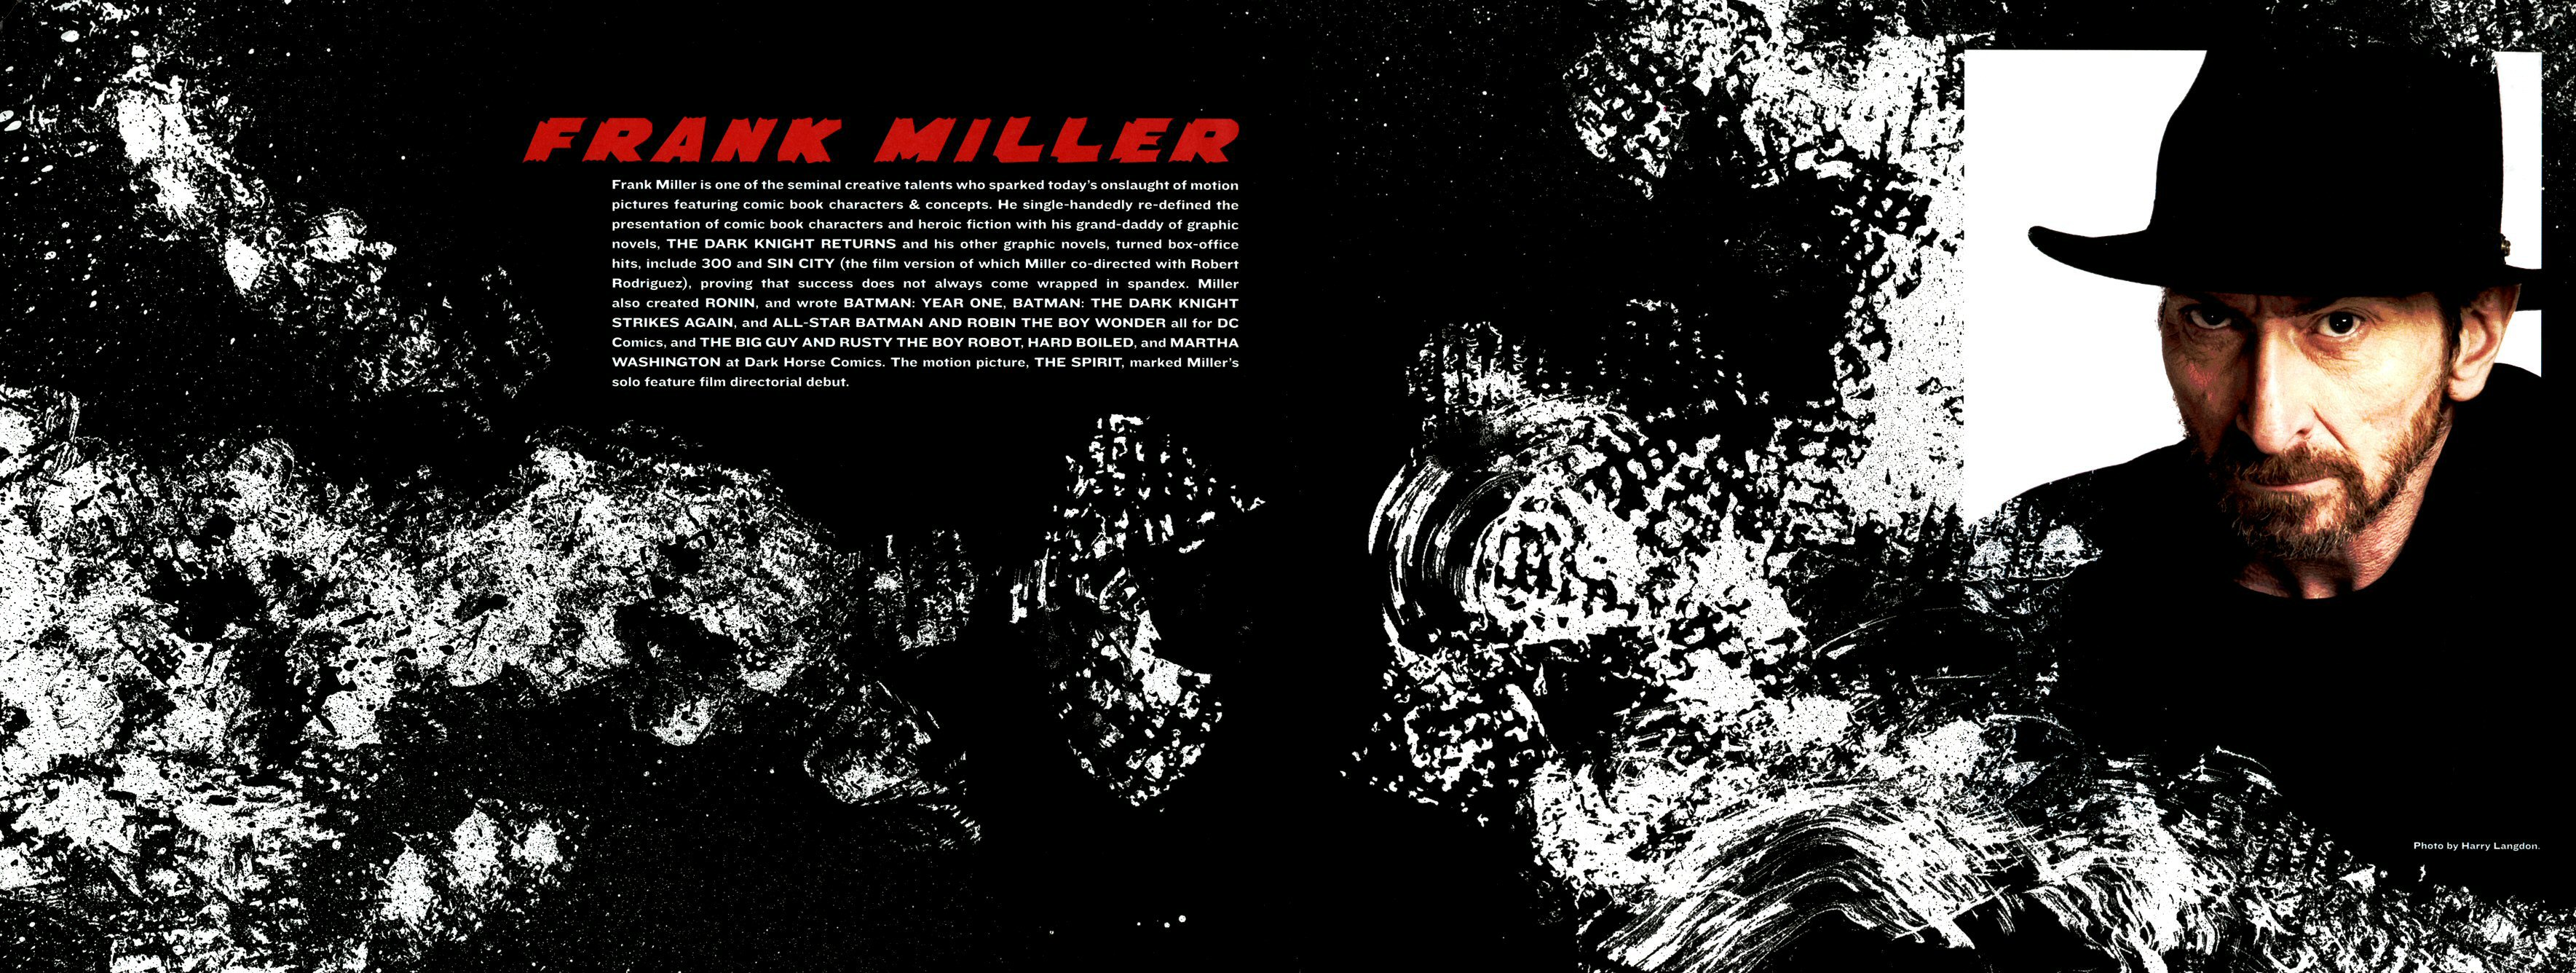 Read online Frank Miller's Holy Terror comic -  Issue # TPB - 119